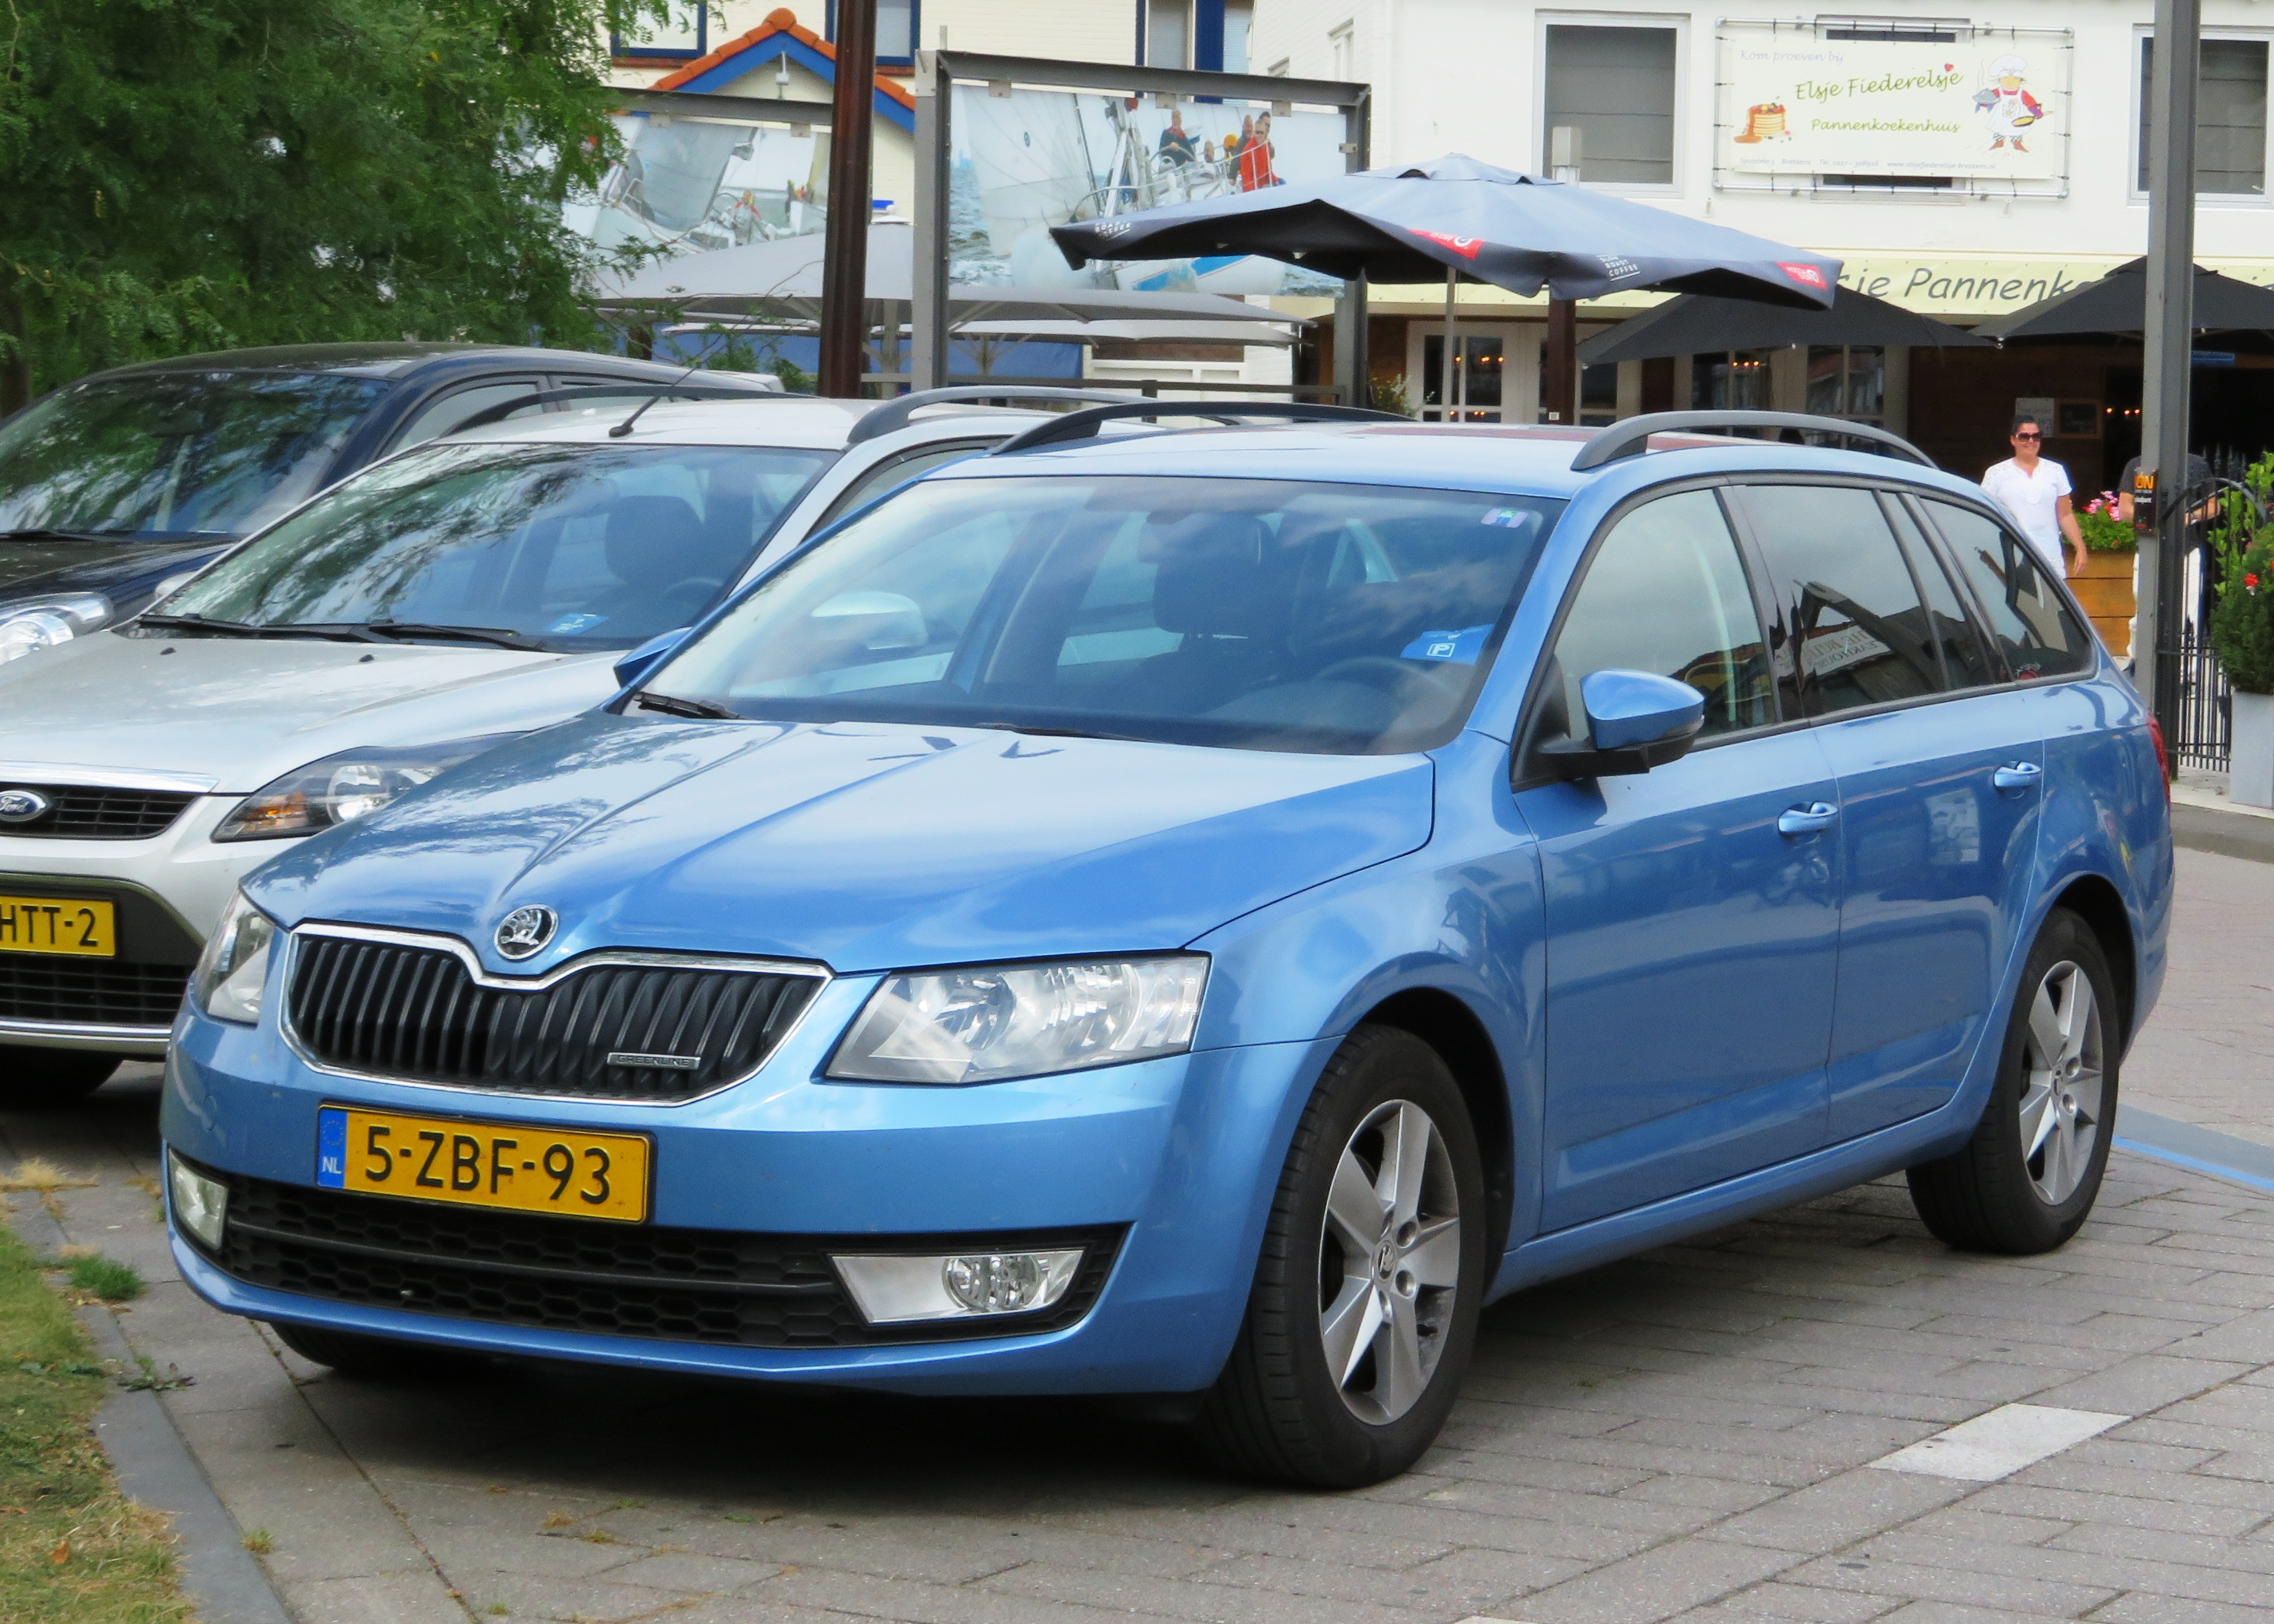 Skoda Octavia Greenline 3 File Skoda Octavia Kombi Greenline In Denim Blue Jpg